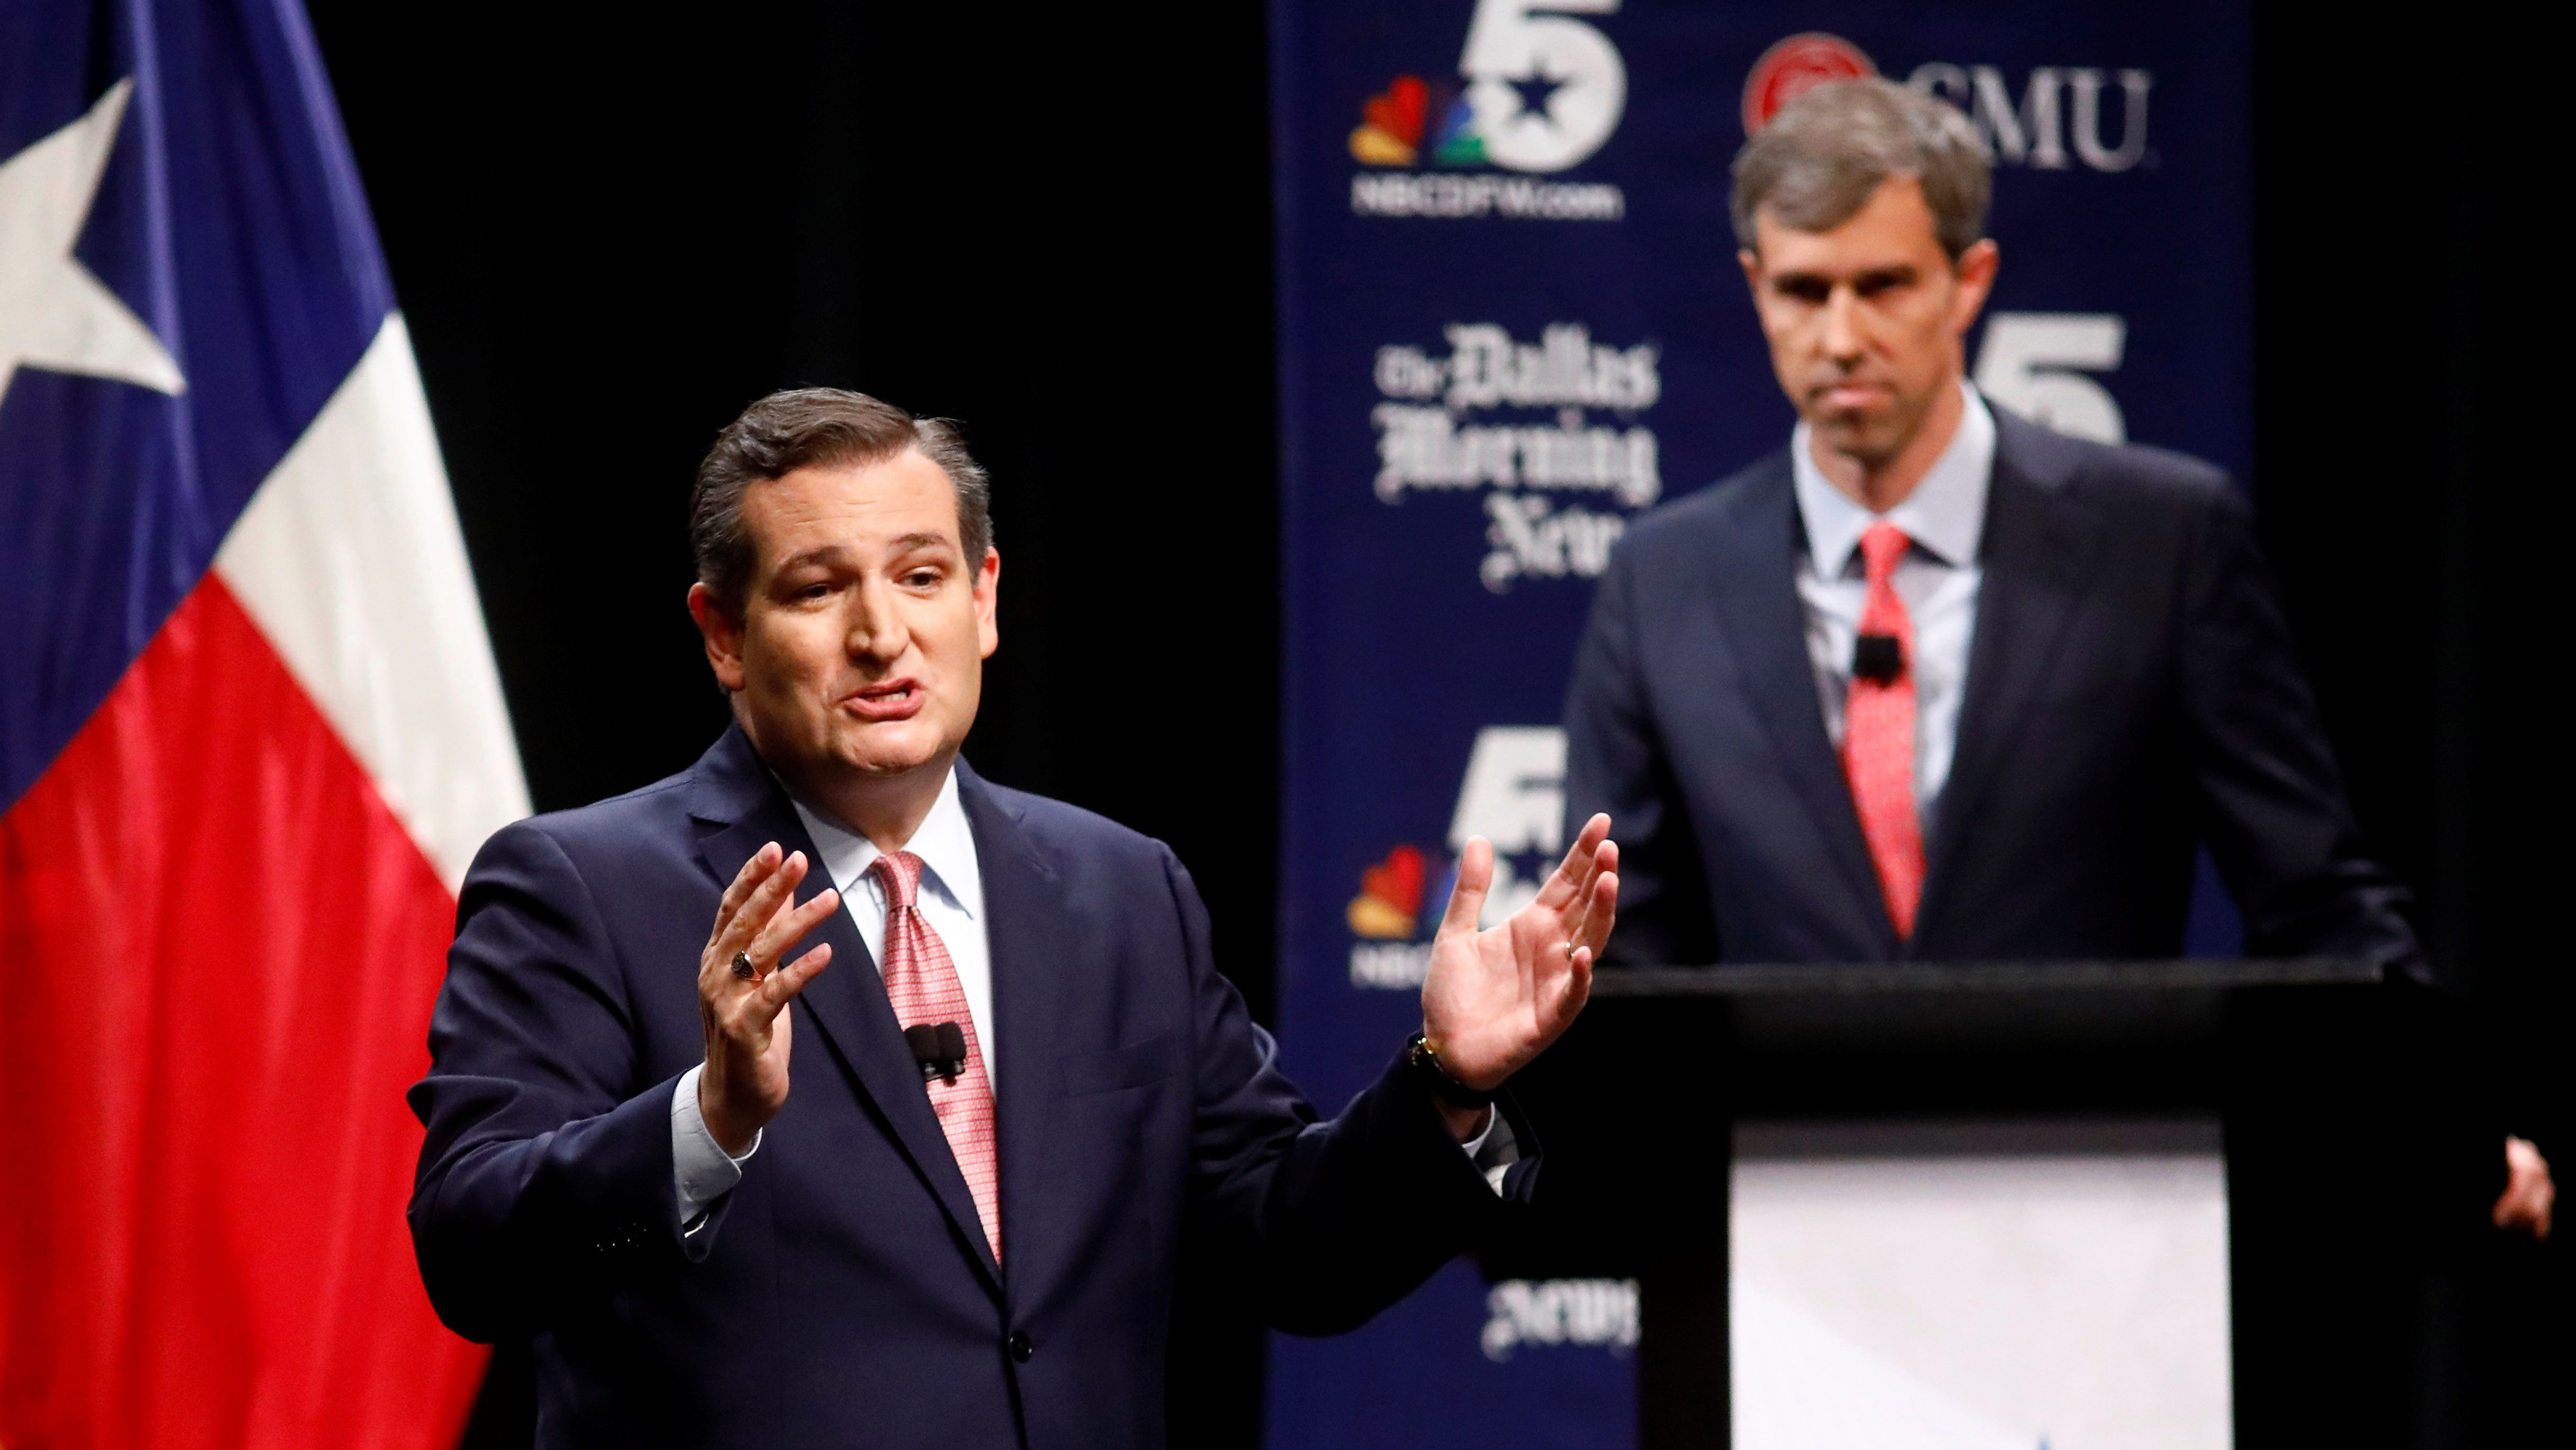 Sen. Ted Cruz (R-TX) makes his final remarks as Rep. Beto O'Rourke (D-TX)